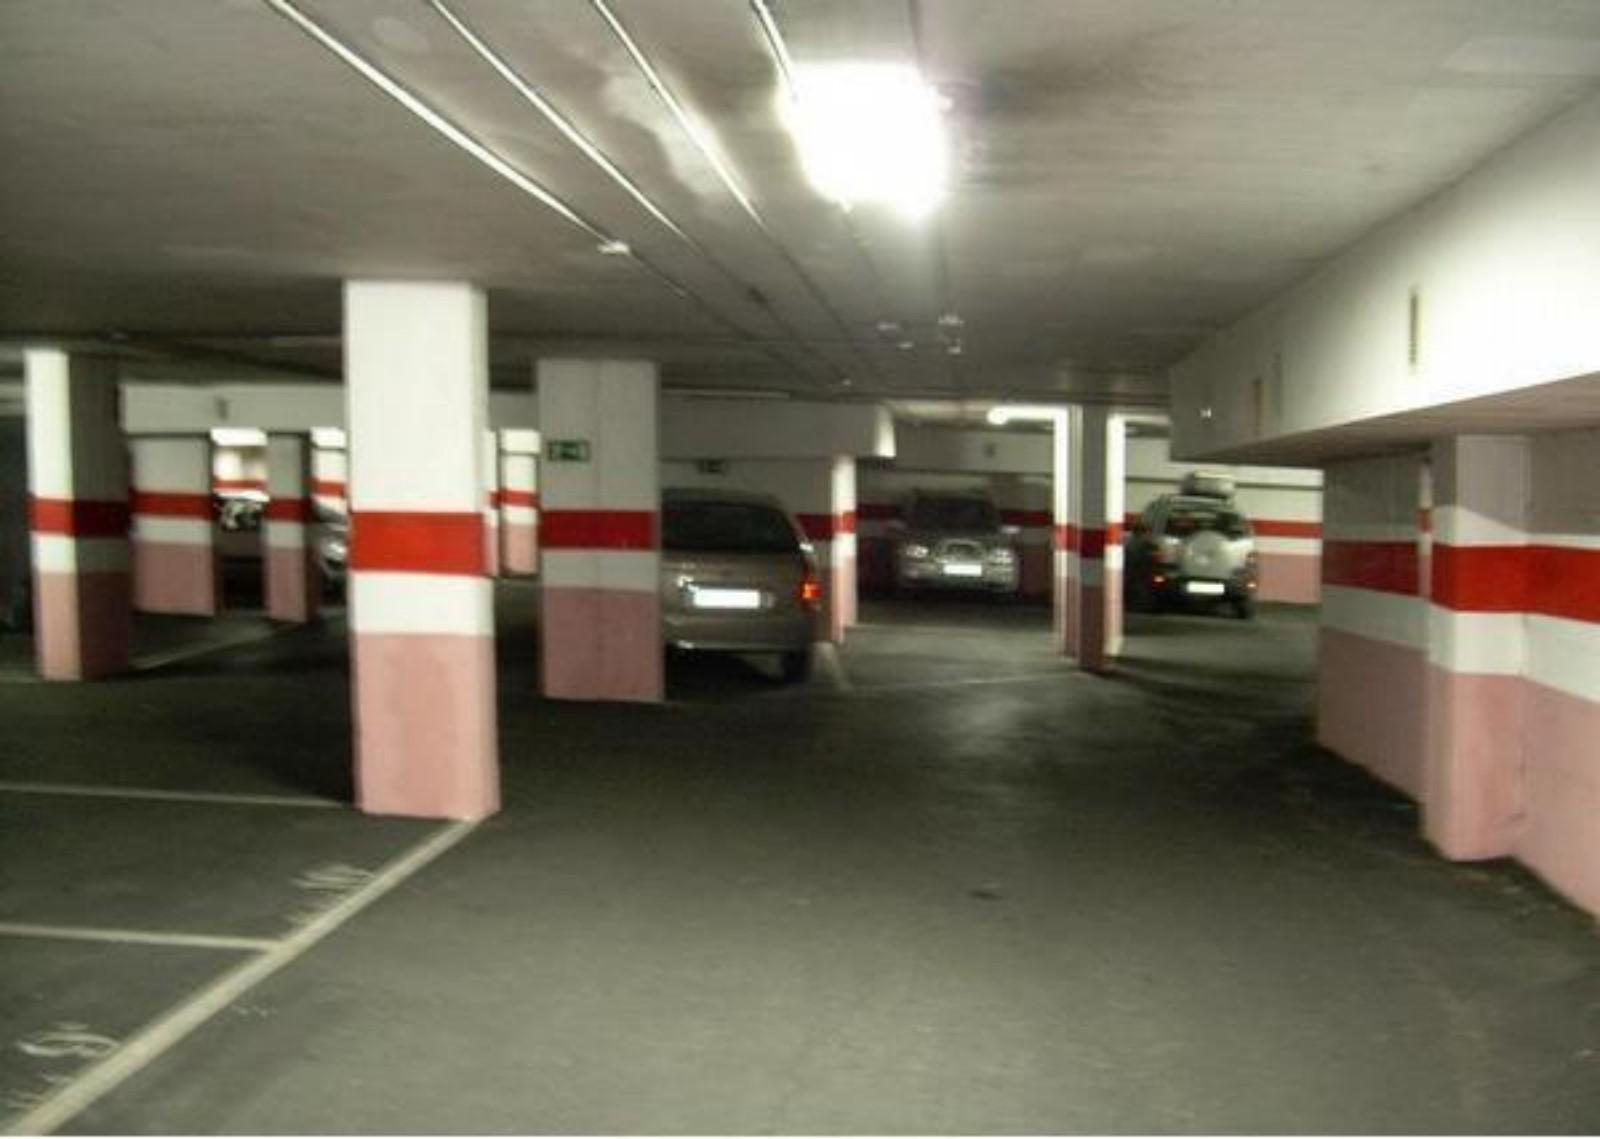 164672 - Parking cerca plaza deCan Roca